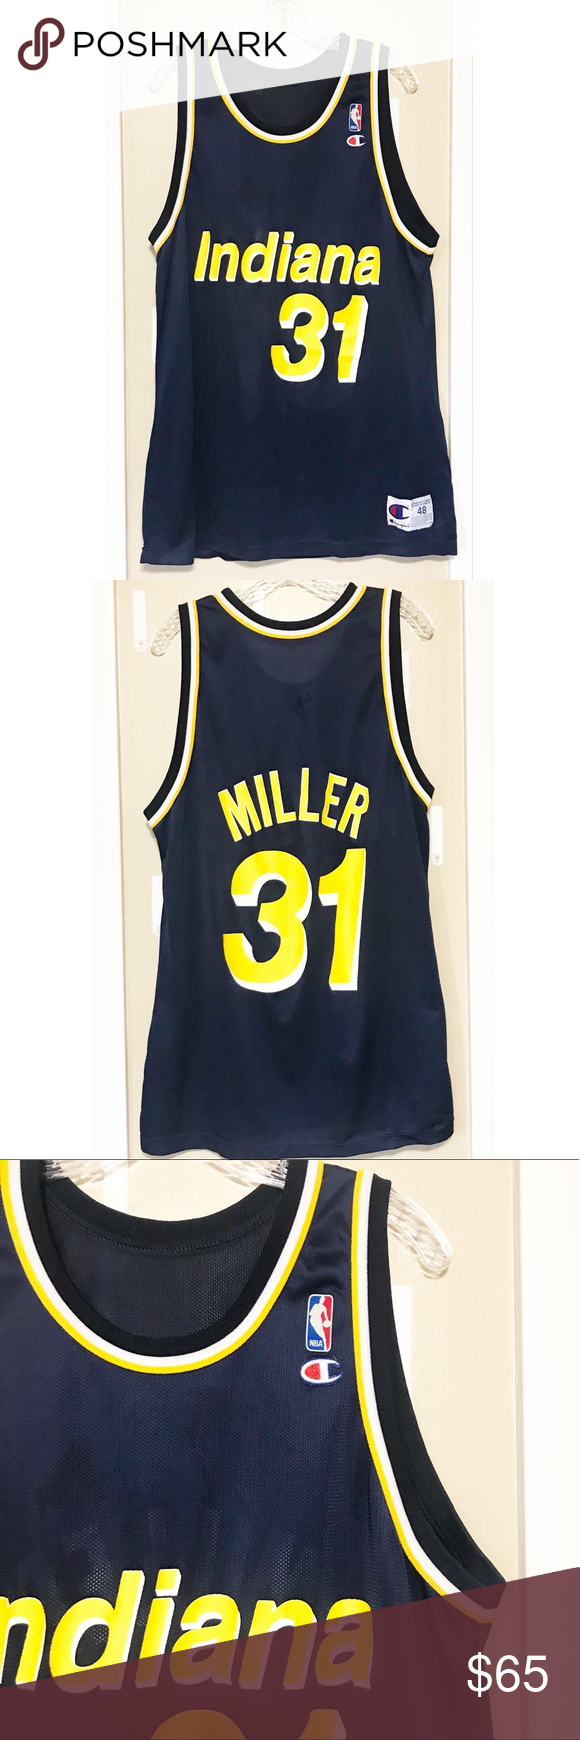 on sale 7ddae 35175 Retro Reggie Miller Indiana Pacers B-ball Jersey Excellent ...